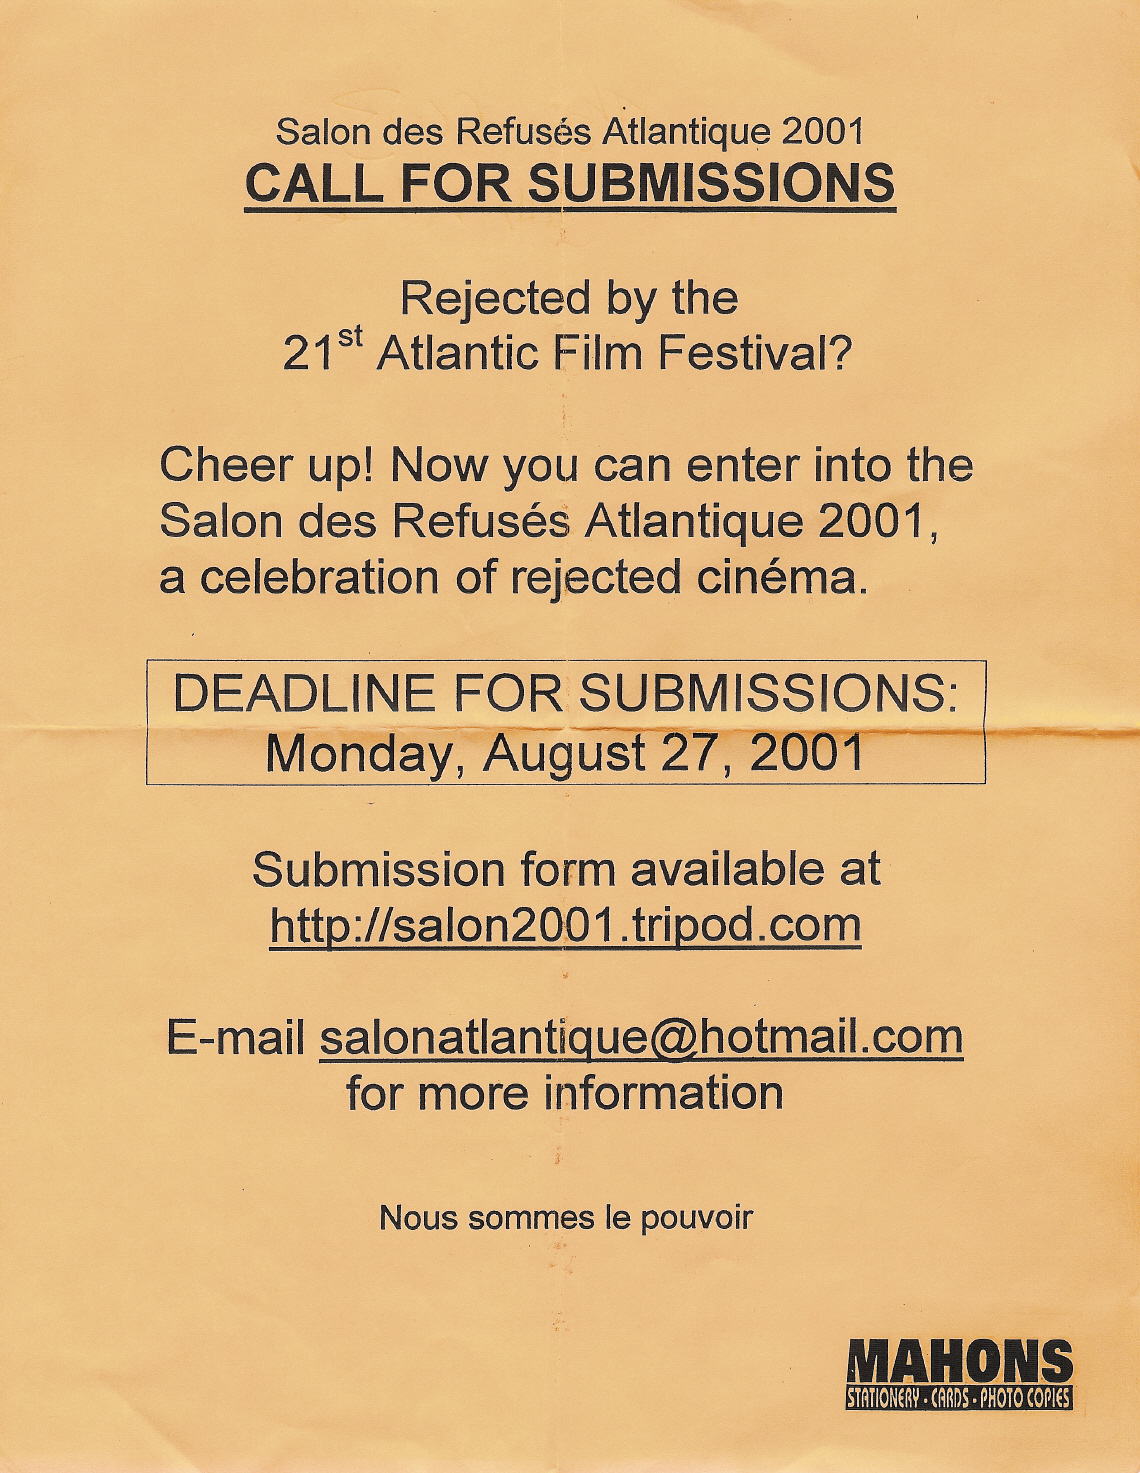 The first ever call for submissions